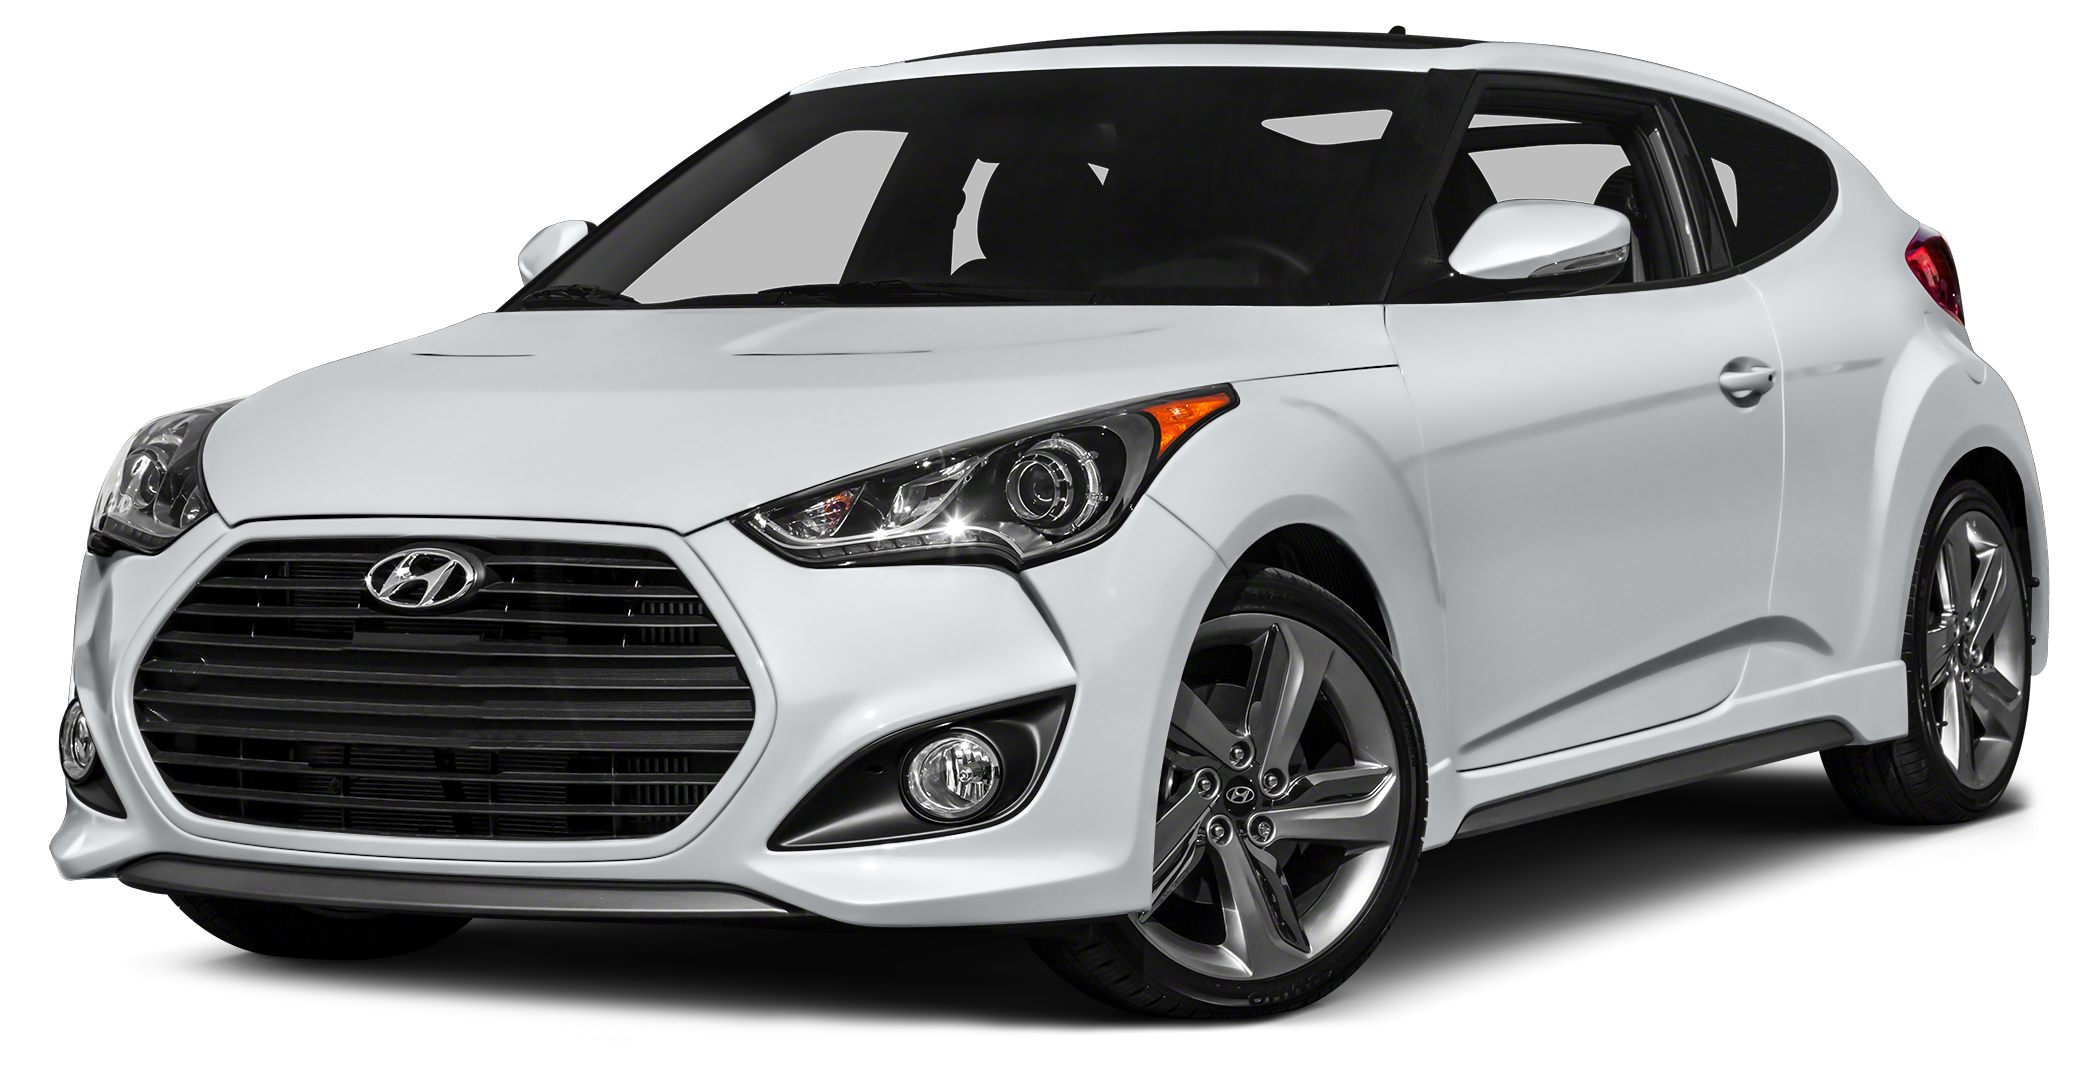 2015 Hyundai Veloster Turbo 2015 Hyundai Veloster Turbo in Century White Bluetooth for Phone and